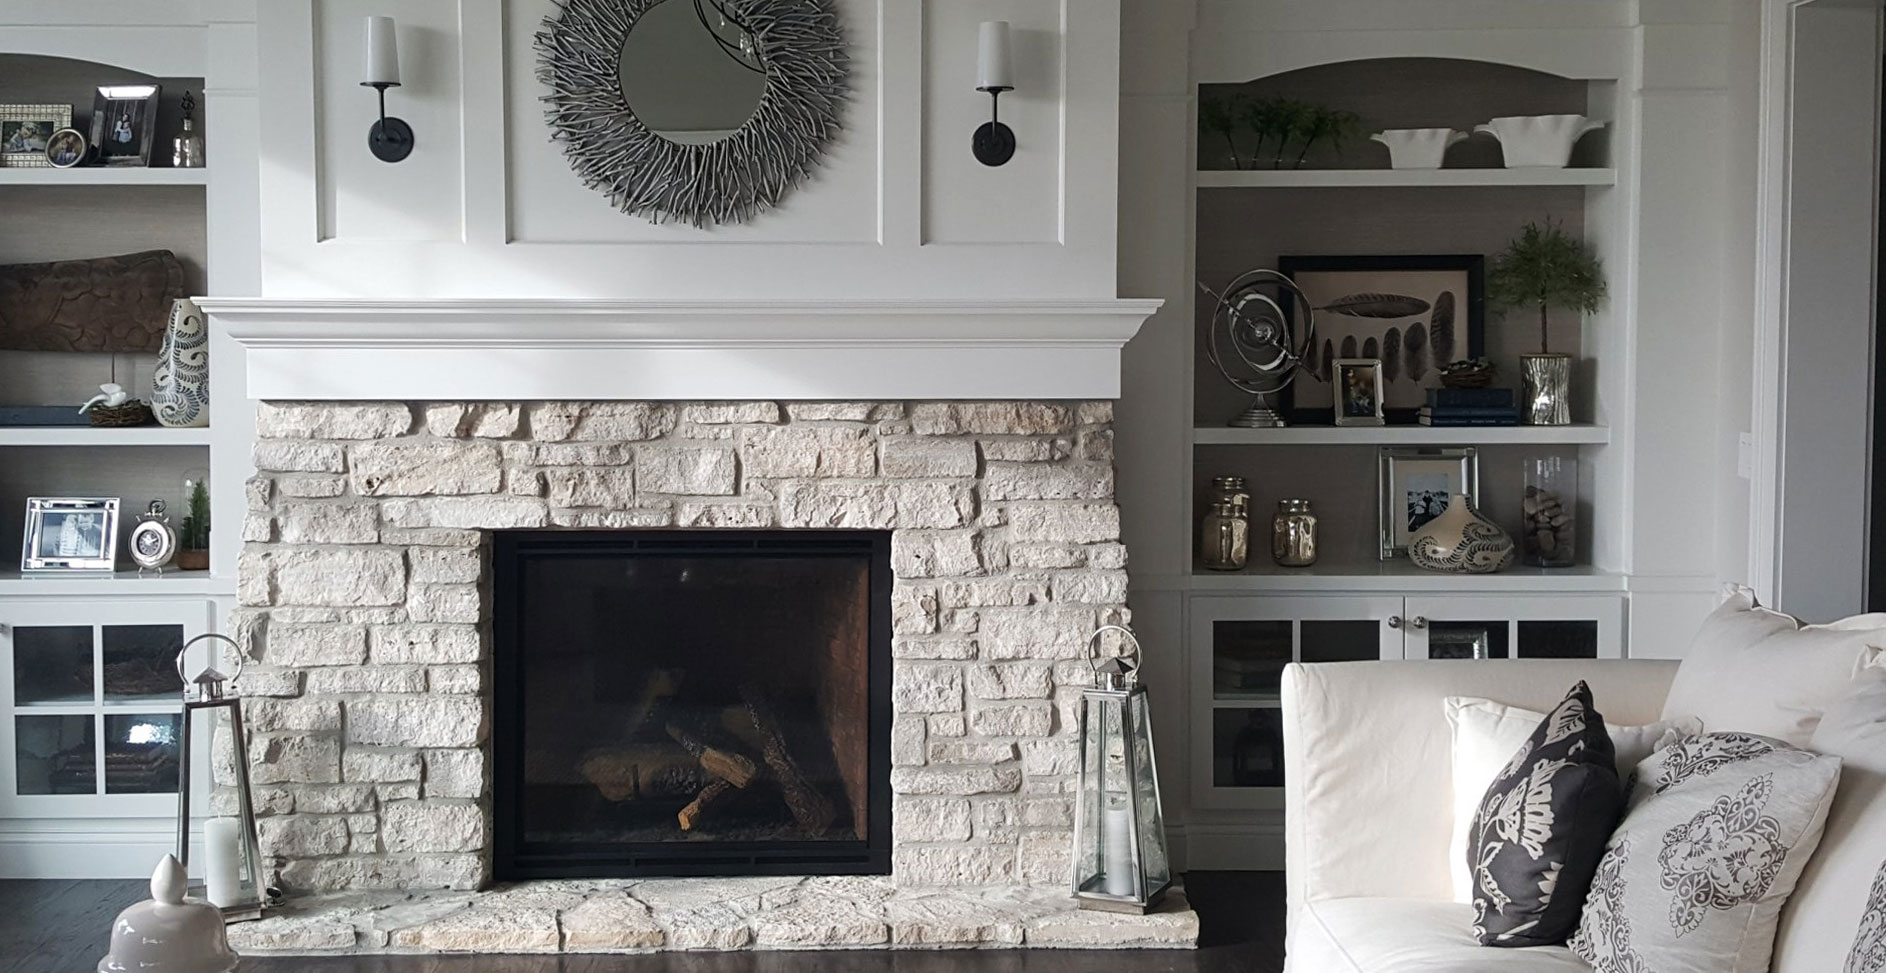 Monochromatic white and cream fireplace surround with real stone, built ins and a wood shelf.